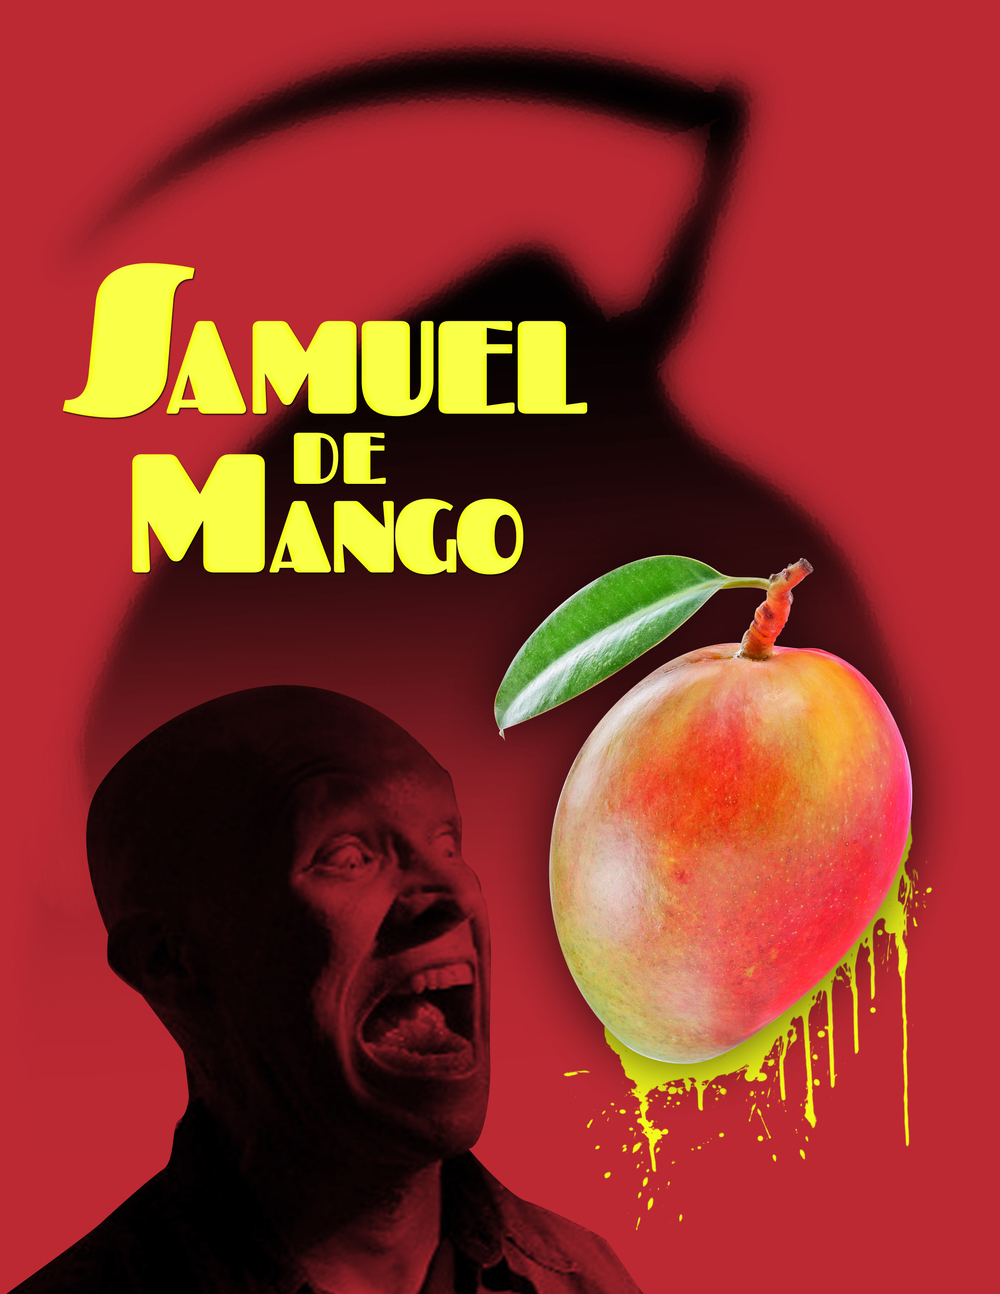 Samuel de Mango Movie Poster